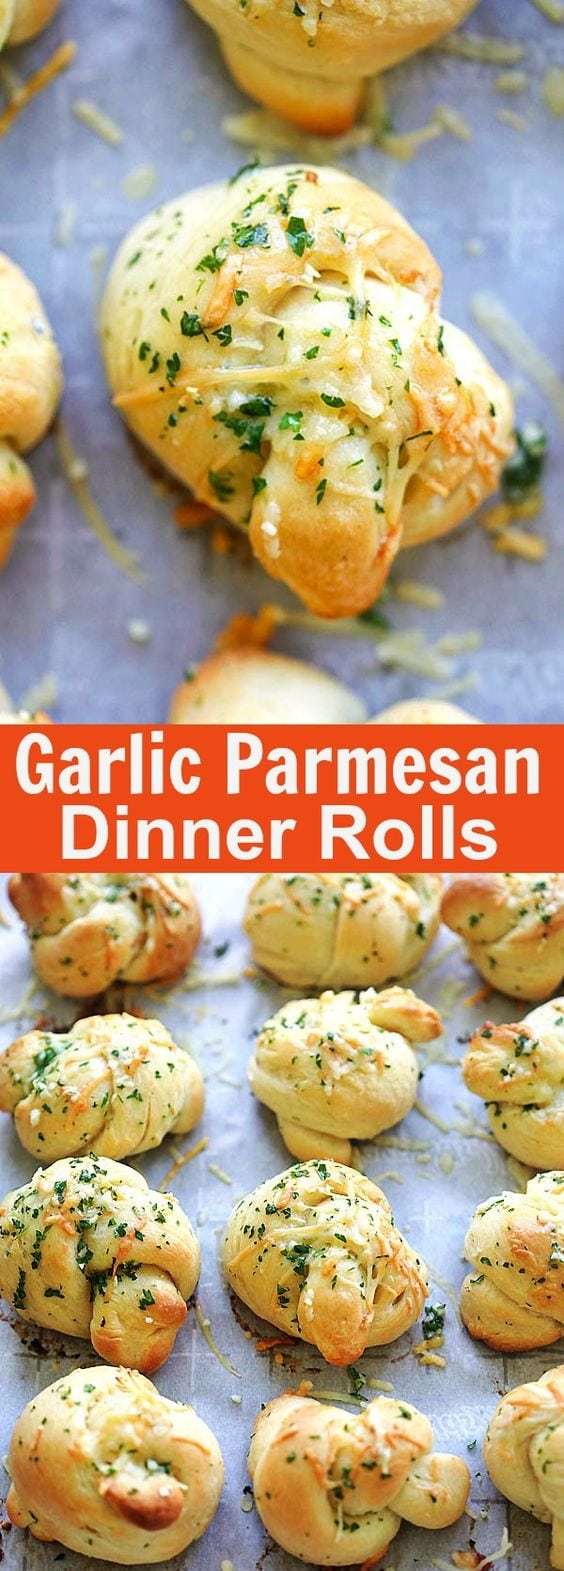 Homemade garlic Parmesan dinner rolls are the best dinner rolls ever. This recipe is so easy with cotton soft rolls topped with garlic and Parmesan cheese. So good | rasamalaysia.com